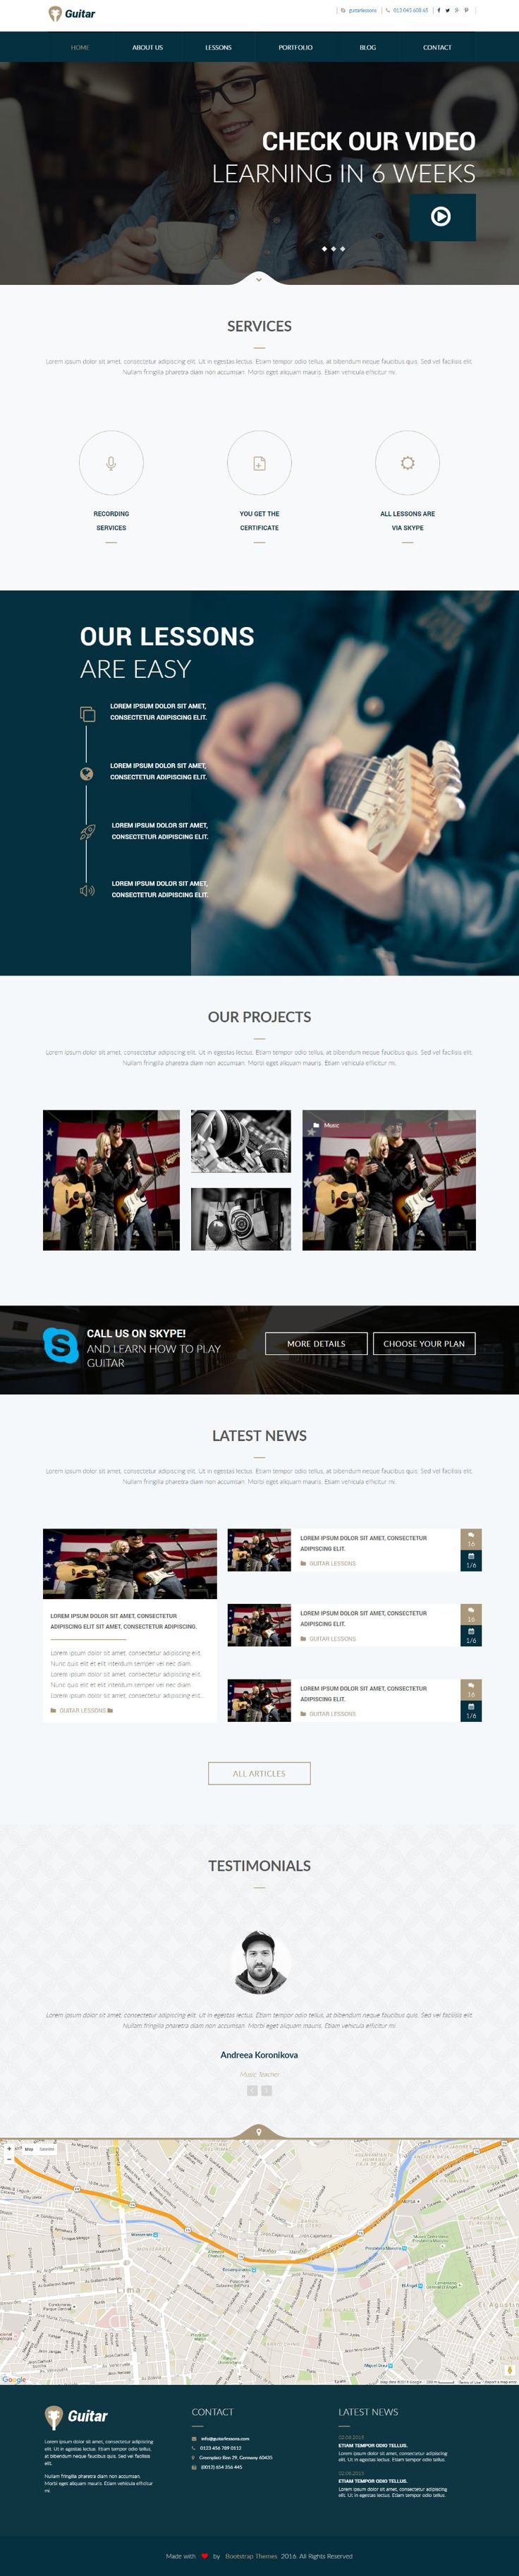 We have created Free Html Guitar School Website. You can download the HTML for your next guitar school website design ! #Free #html #website #template #school #responsive #css #css3 #html5 #guitar